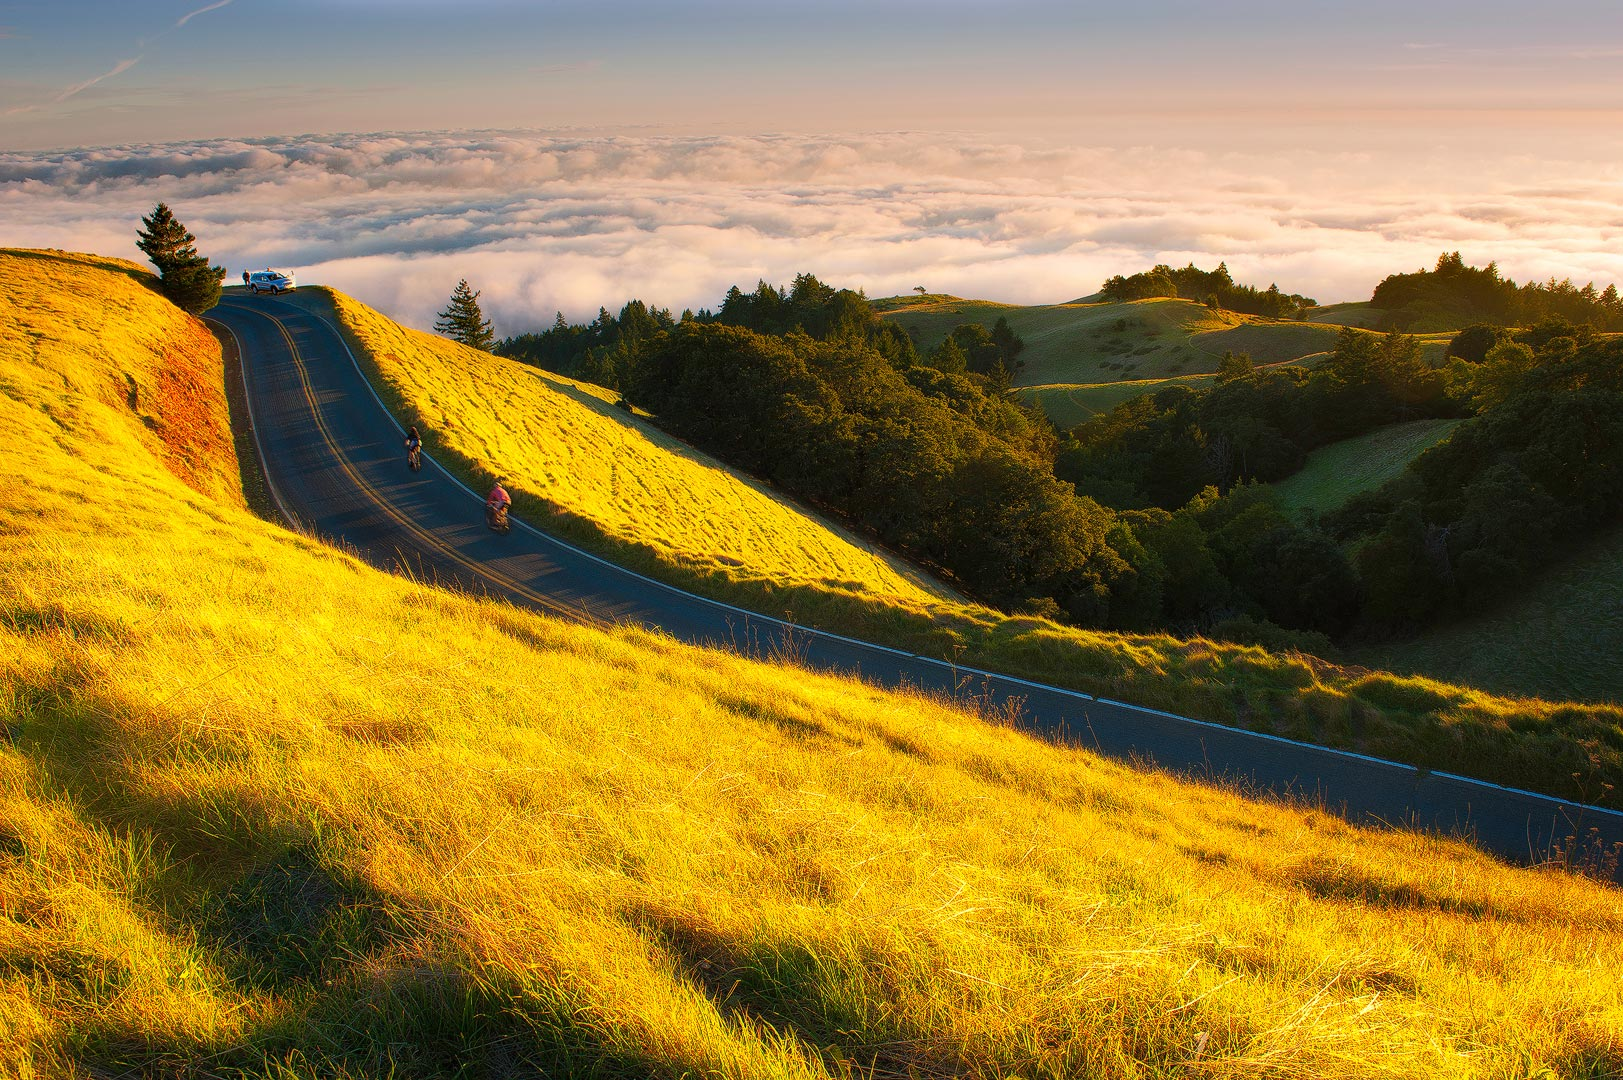 In this Life, Mount Tamalpais, California, pacific, coast, ocean, sunset, golden, biker, sea, grass, peak, marin, landscape, bernard chen, timescapes, photo